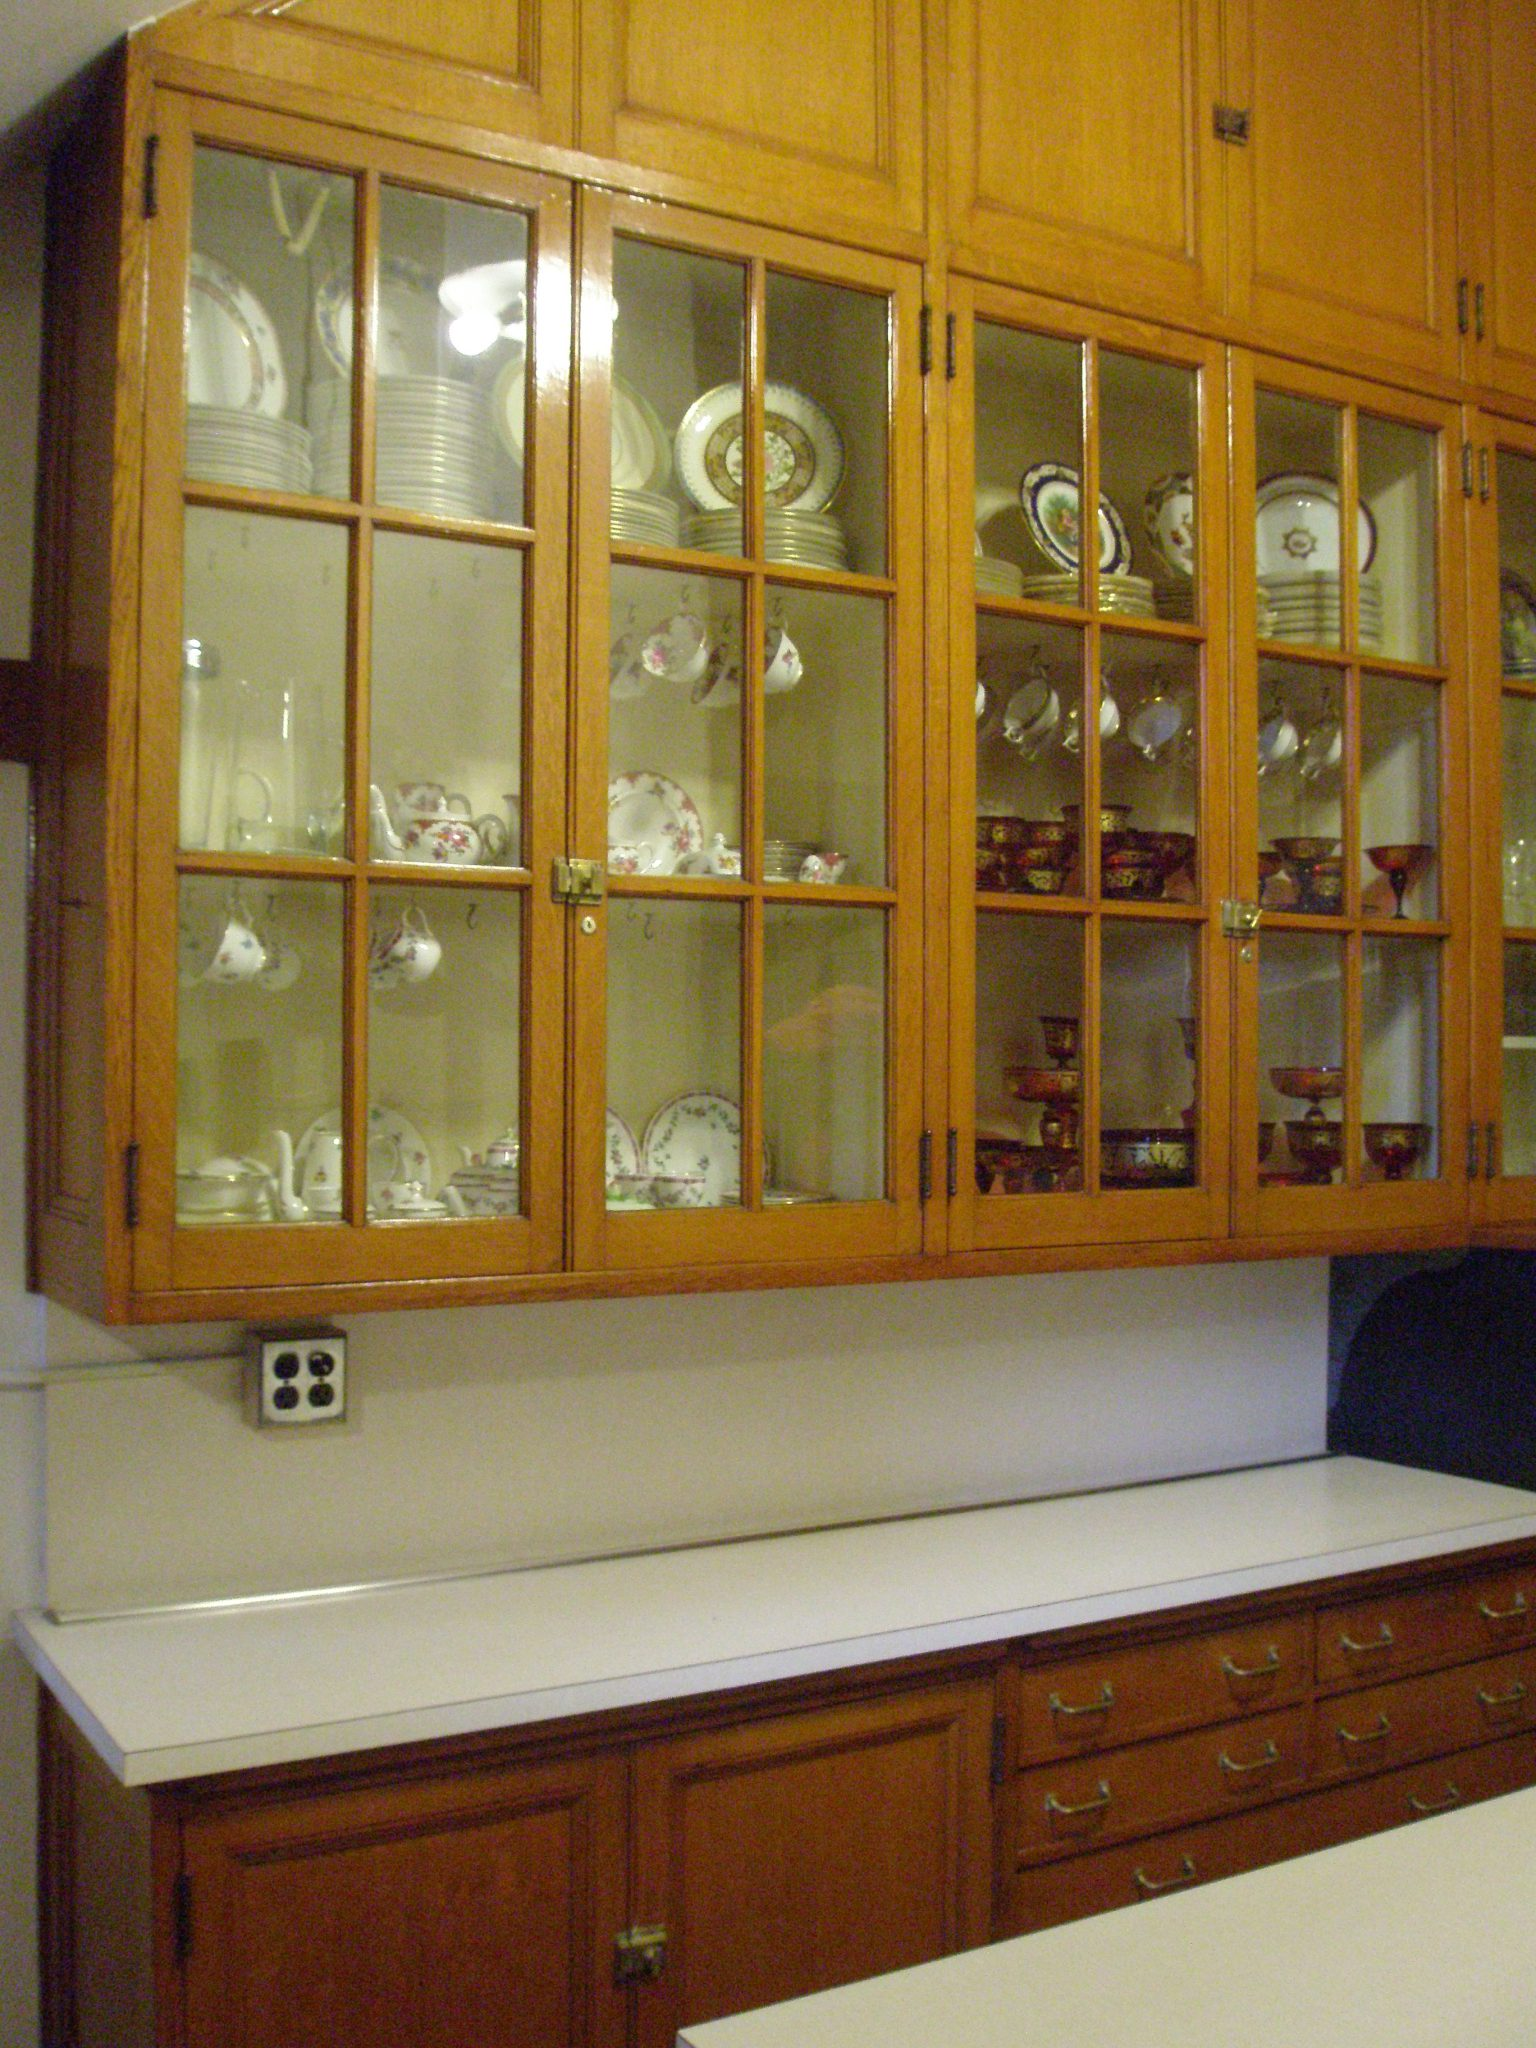 Butler's Pantry. A dumbwaiter connects this room to the main kitchen, which is directly below.